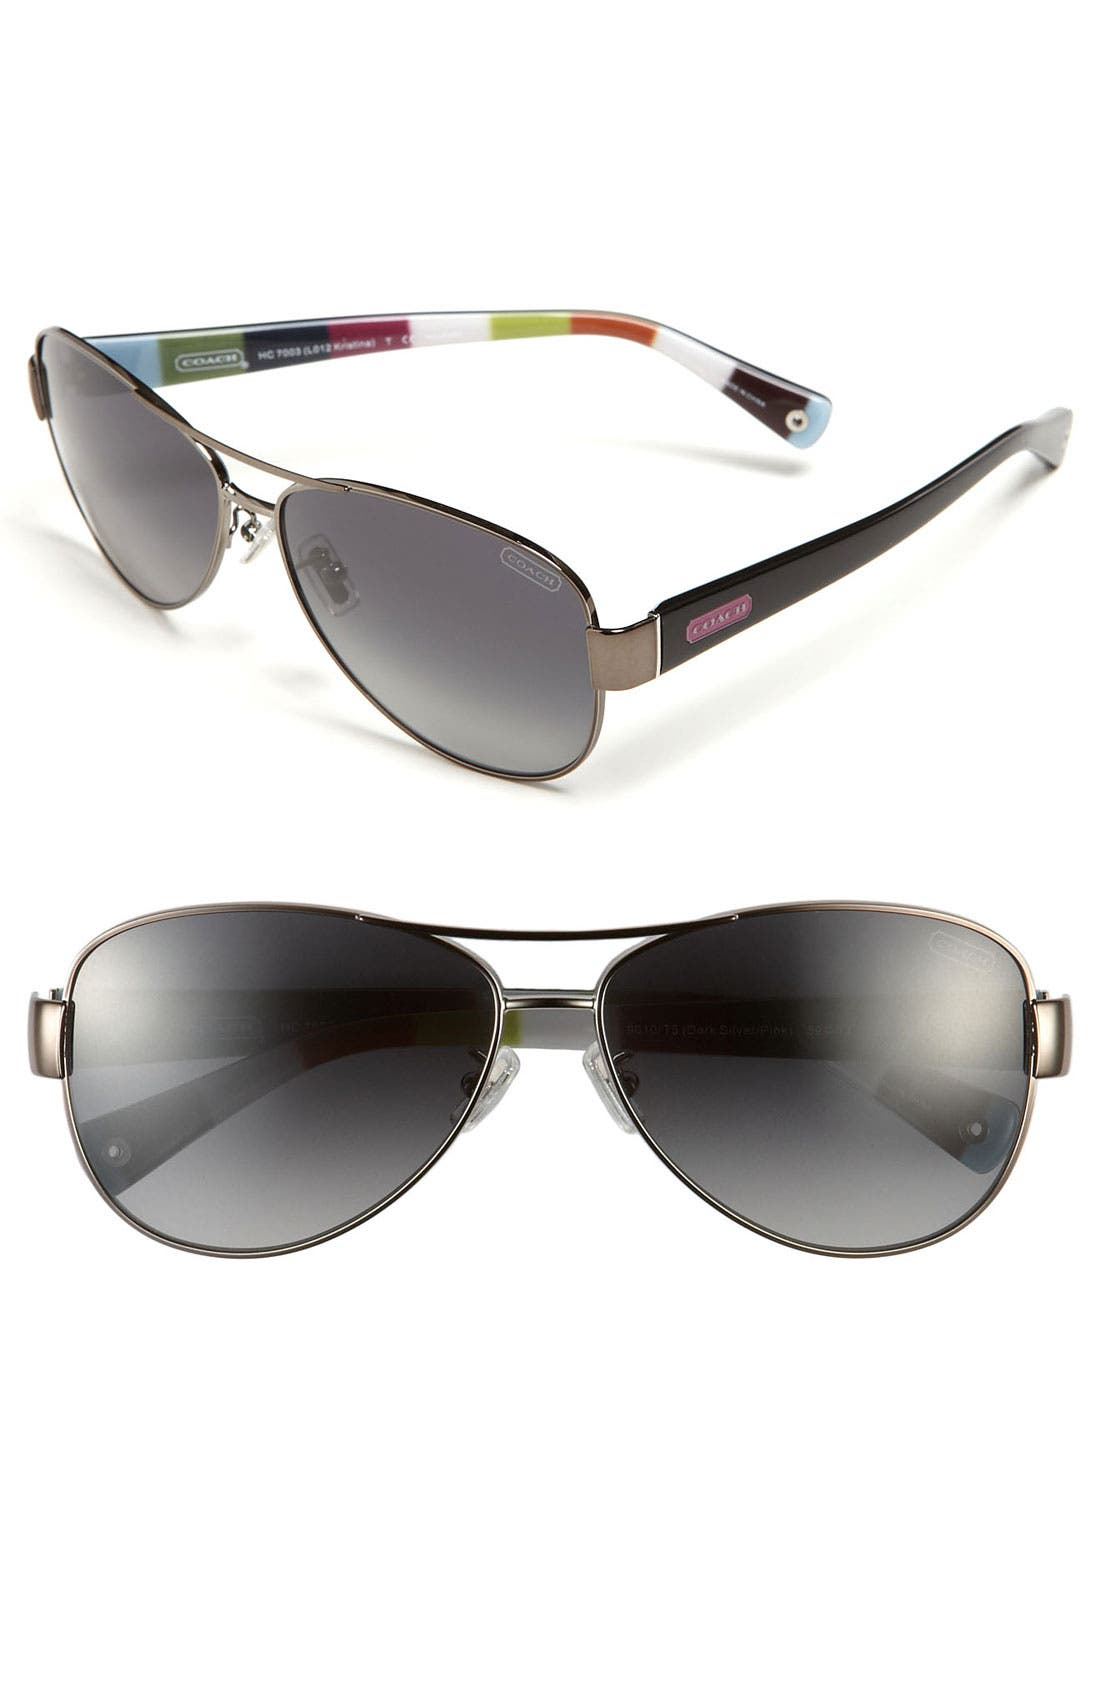 Main Image - COACH Polarized Metal Sunglasses